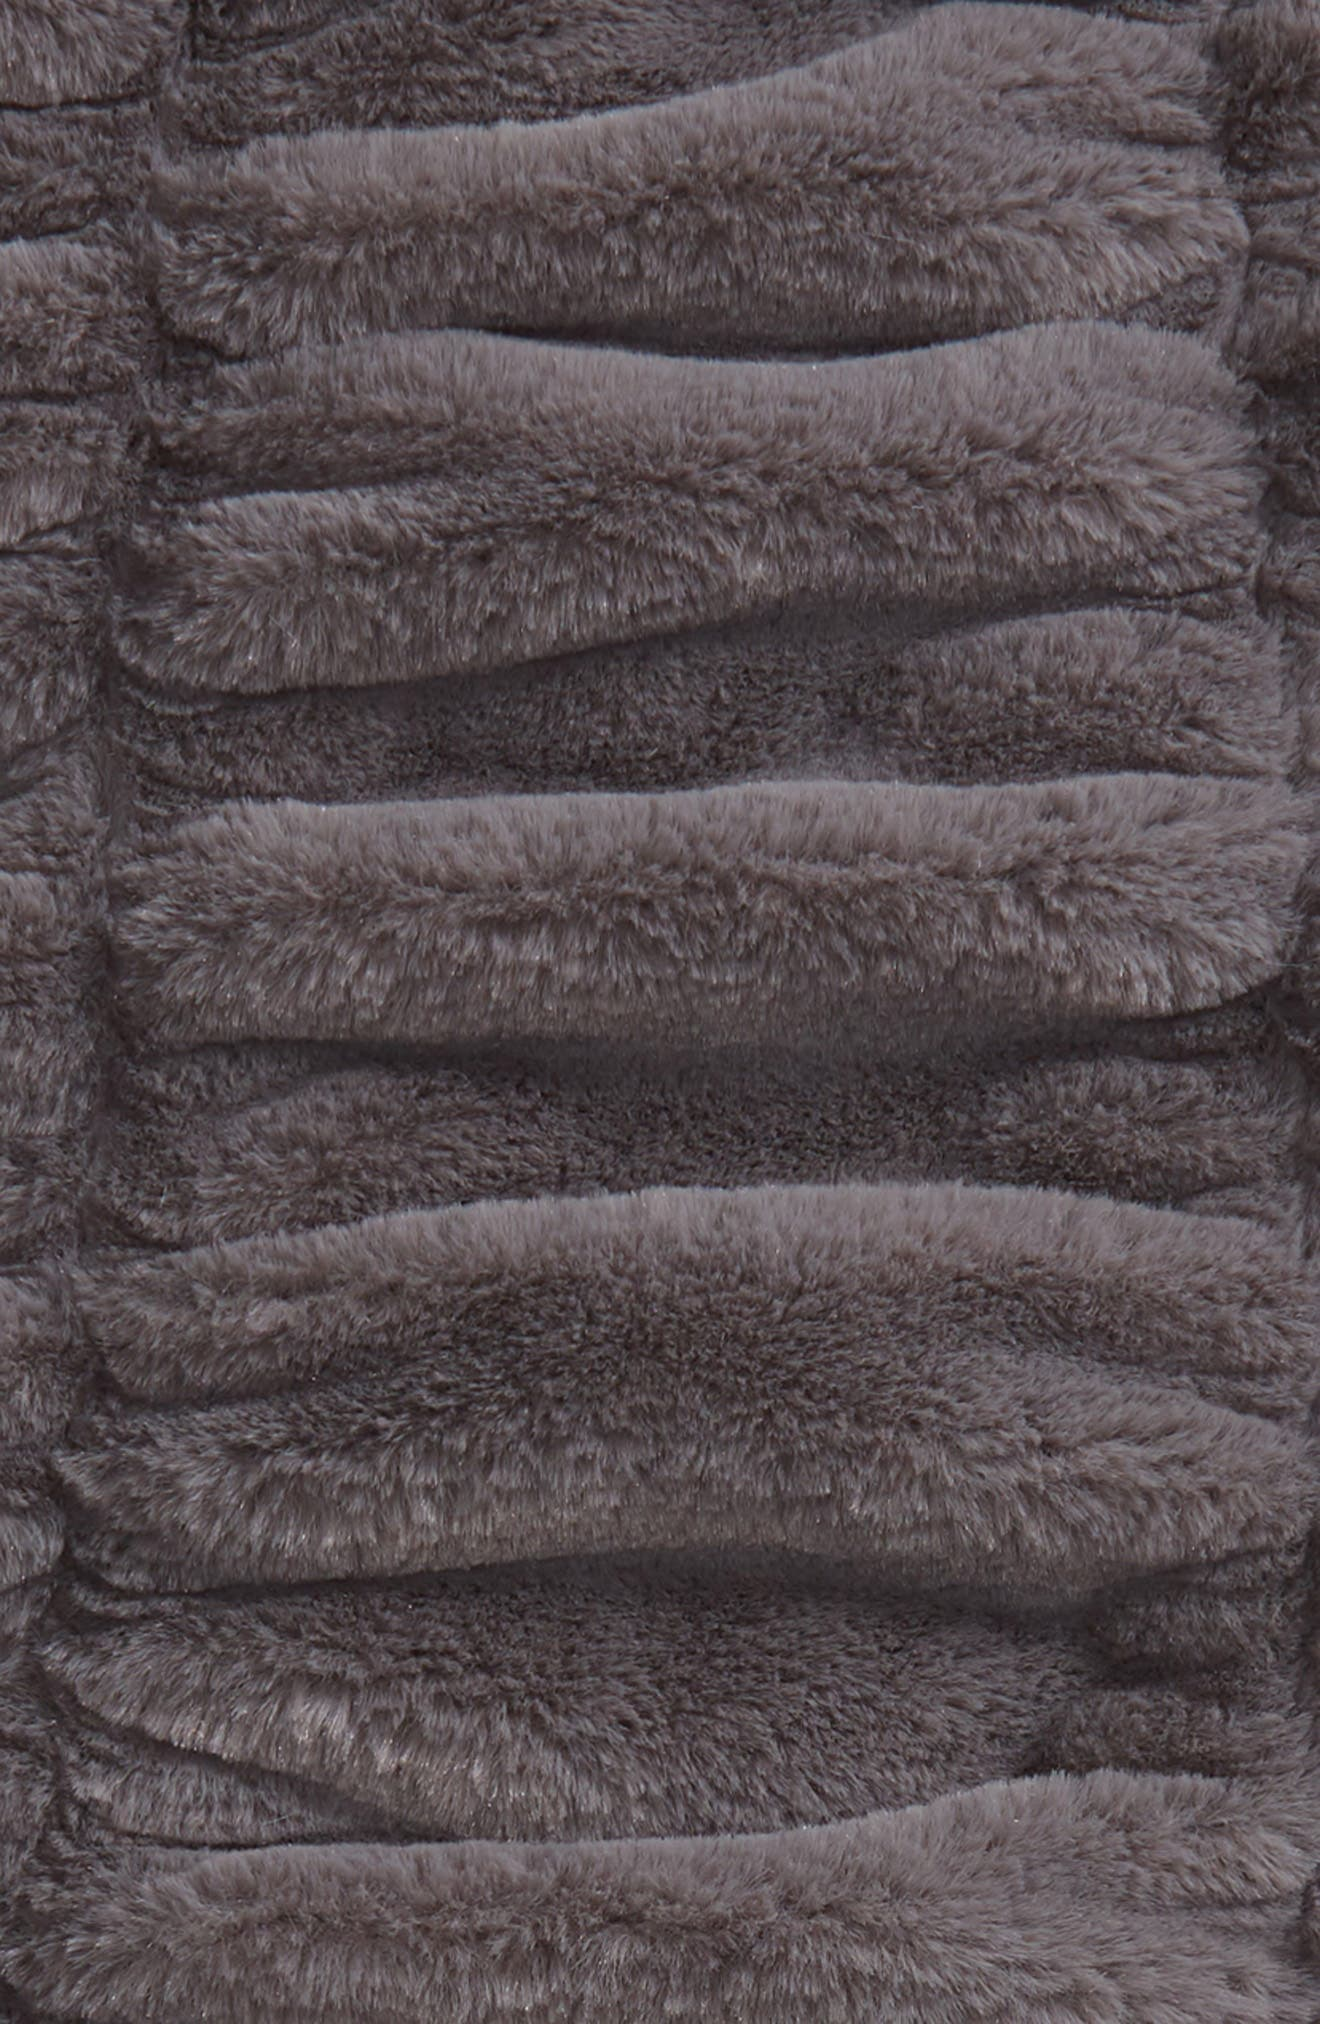 Ruched Faux Fur Throw Blanket,                             Alternate thumbnail 2, color,                             020